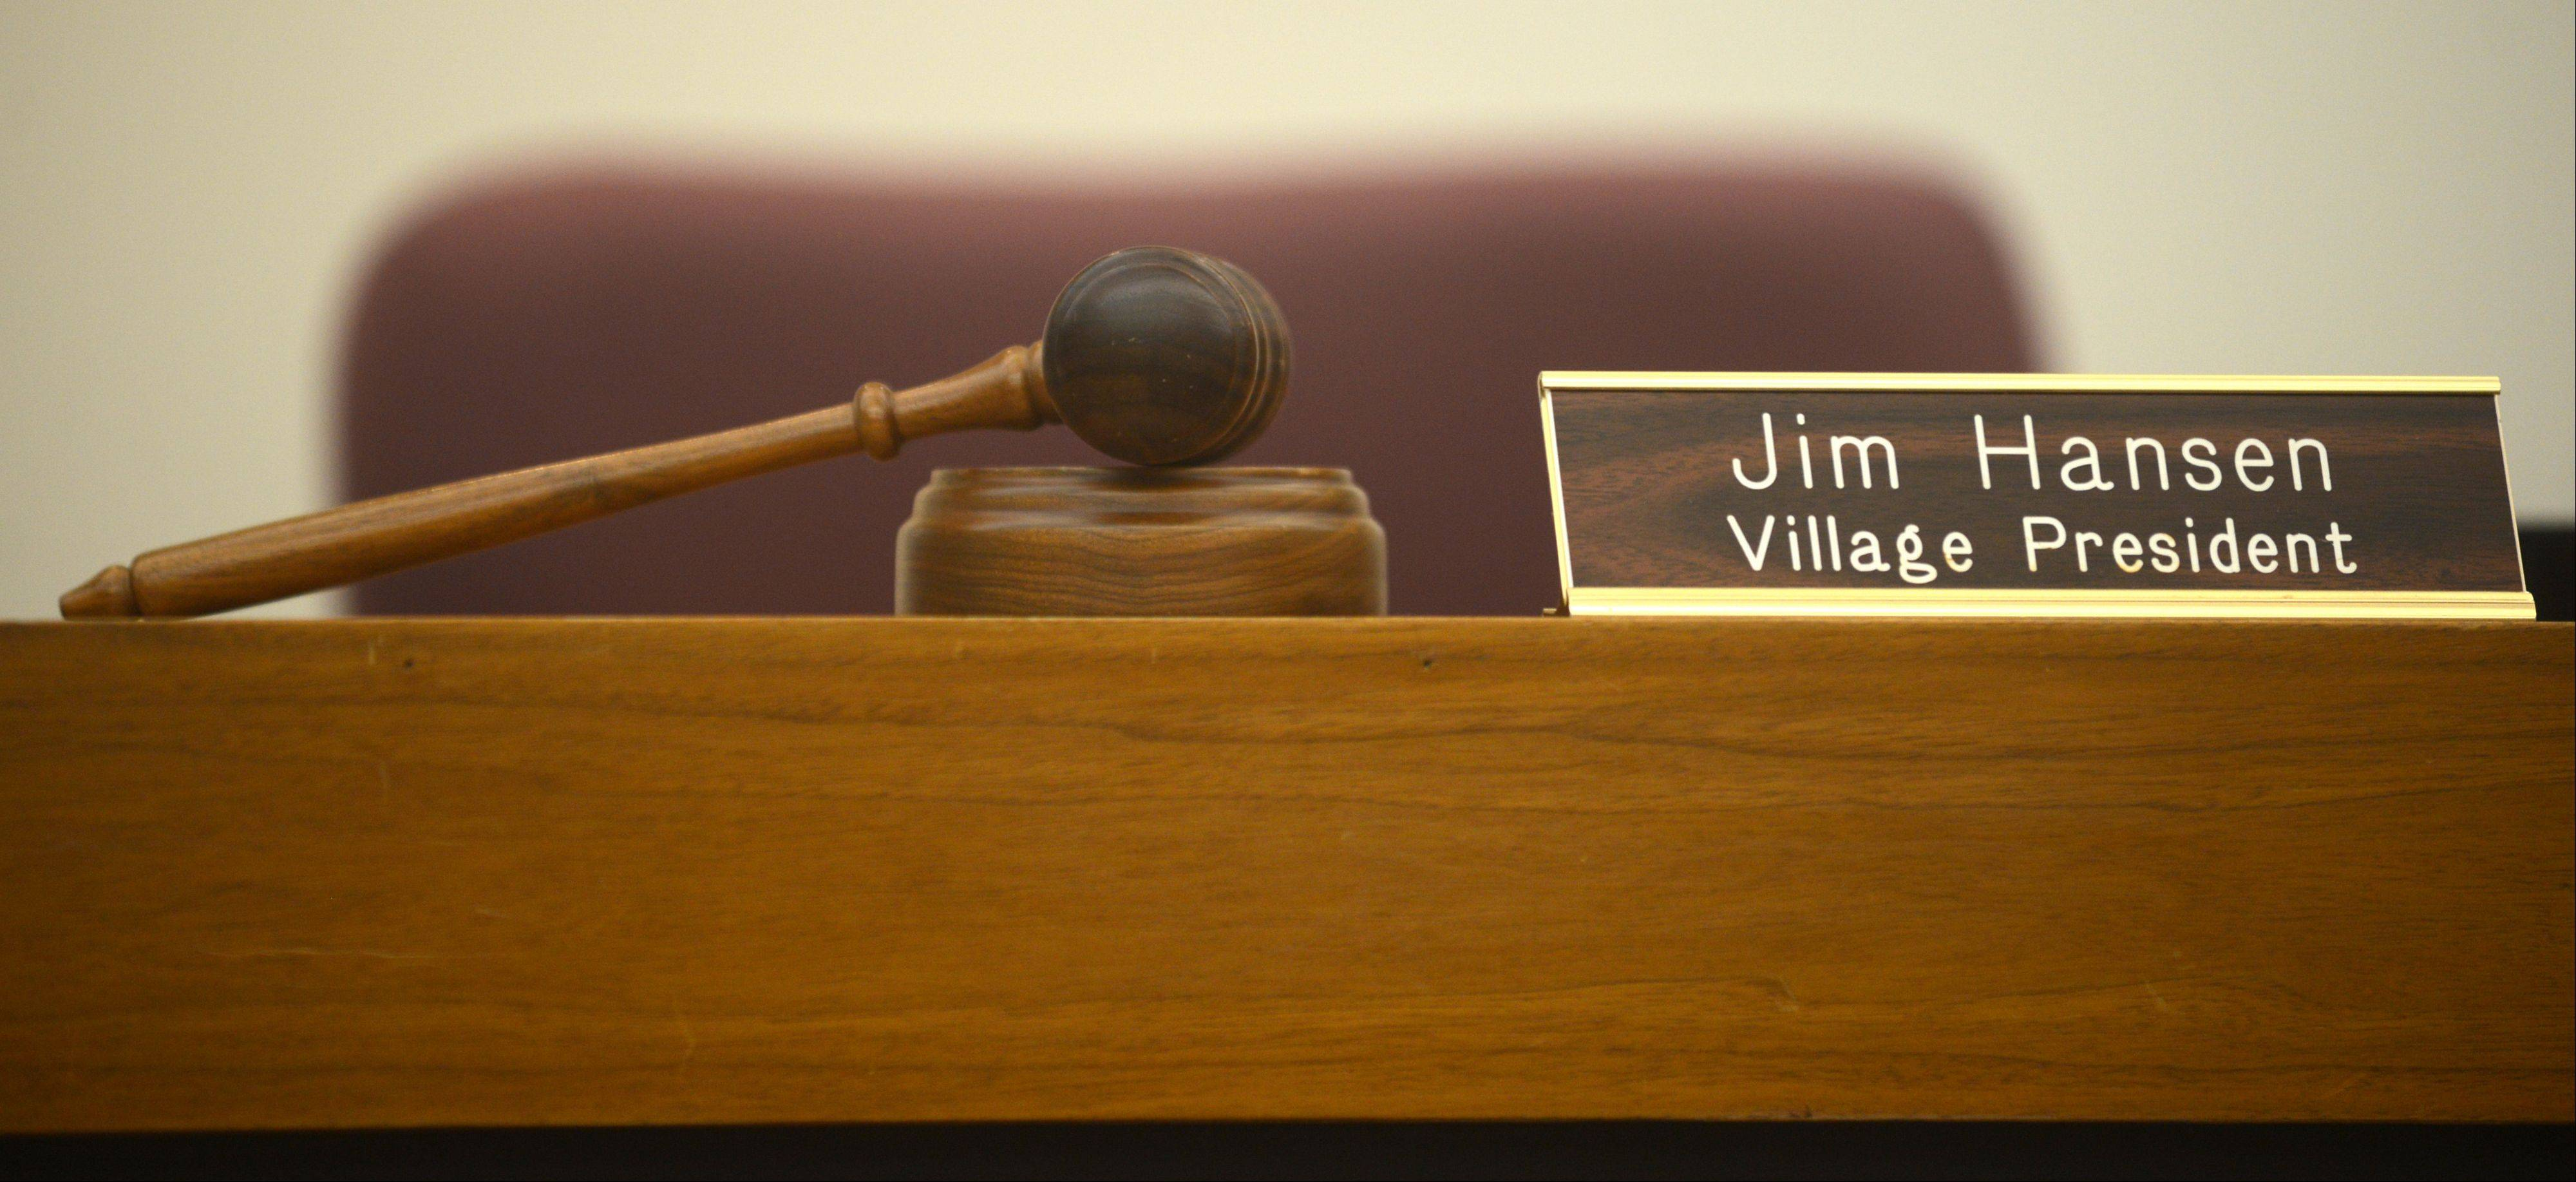 Village President Jim Hansen was remembered during a village board meeting in South Elgin on Monday night. Hansen died over the weekend after a battle with cancer. A gavel and nameplate accompanied Hansen's vacant seat.